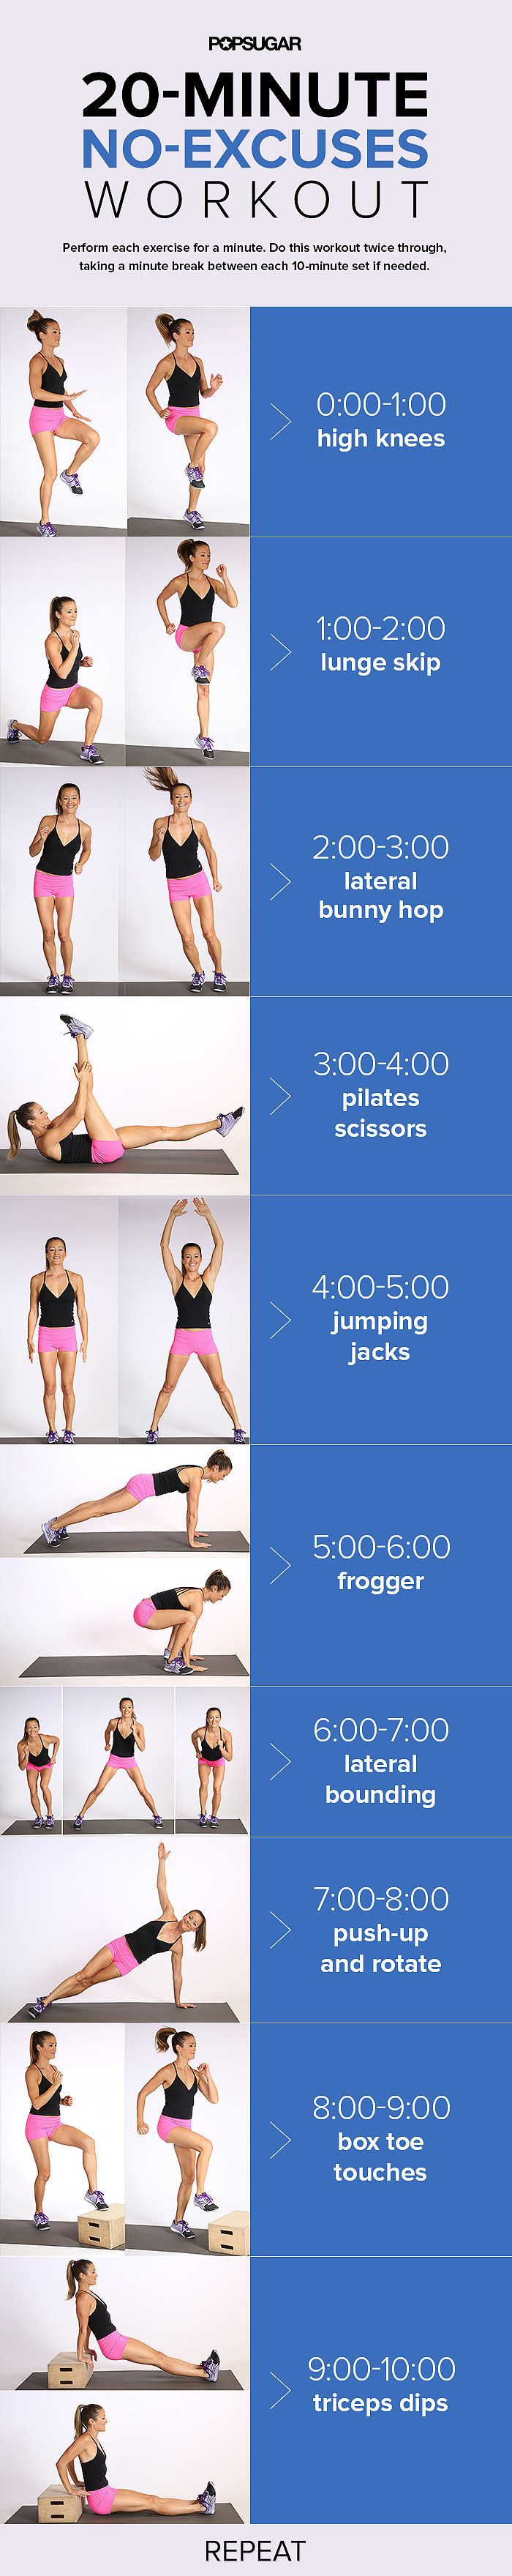 Living Room Workouts to Torch Calories at Home - A perfect cardio workout for those who hate running!